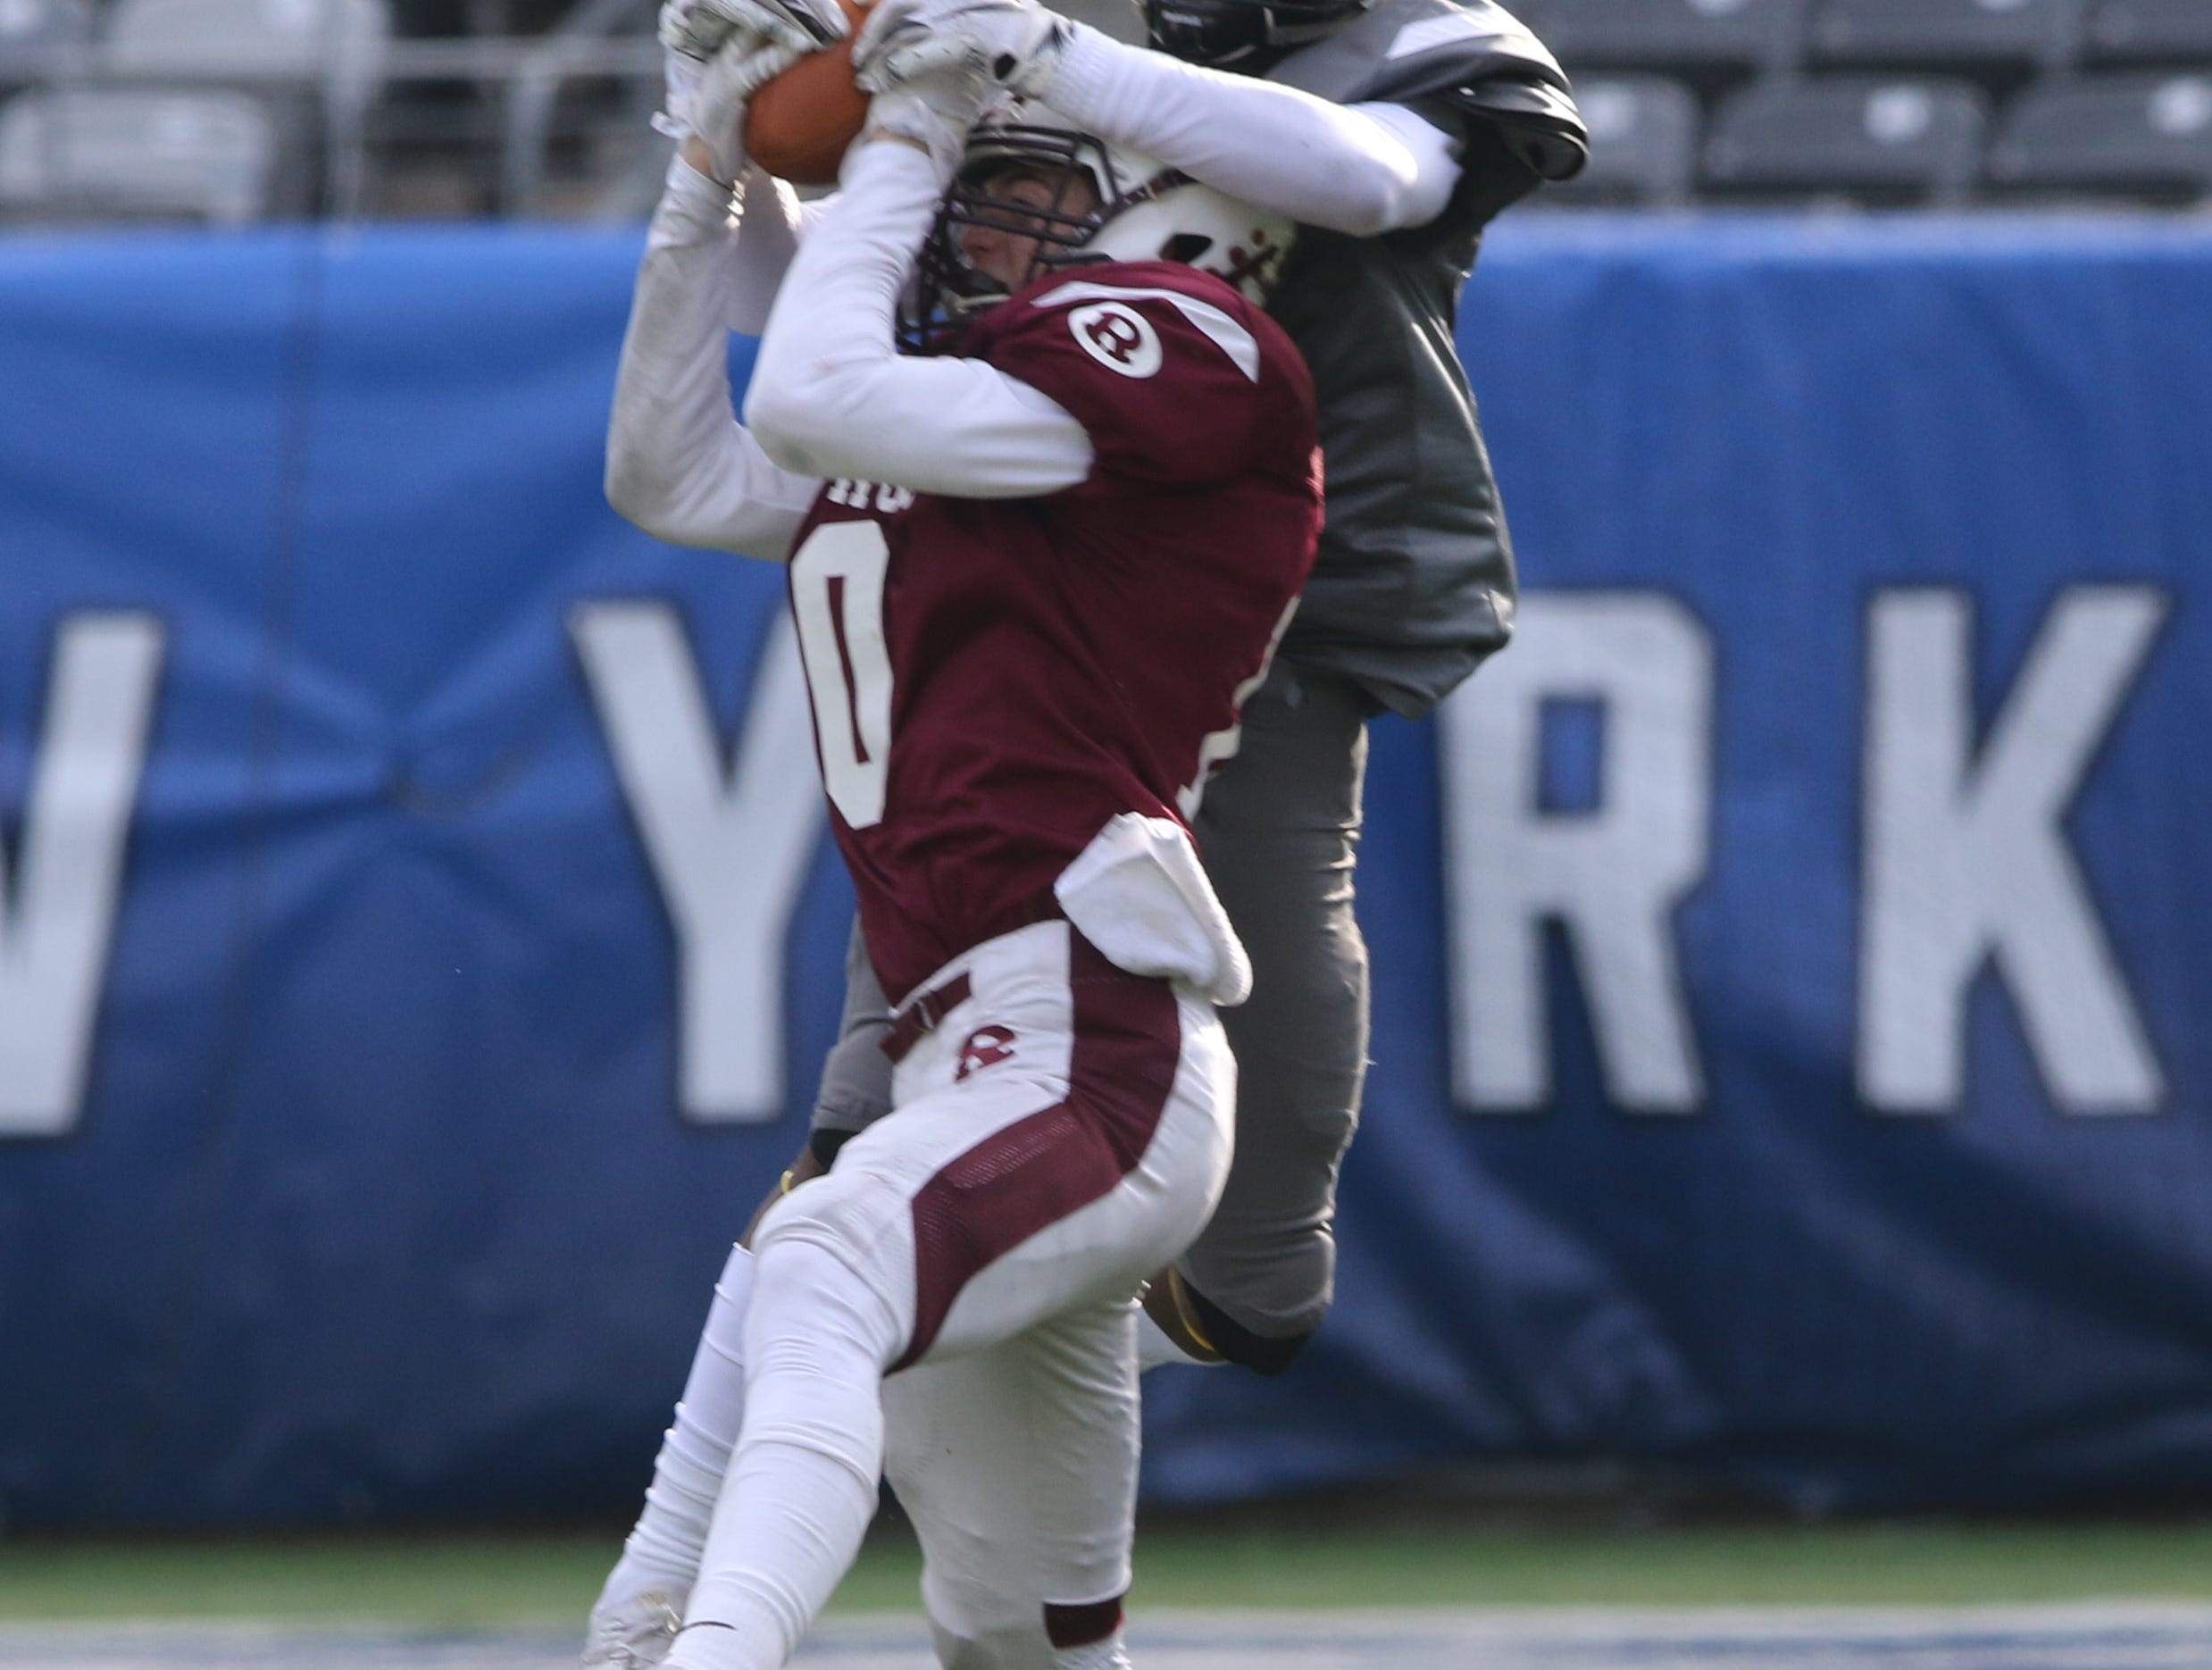 Gavin Peene of Ridgewood seems to come up with this interception but the ball is taken away by Lord James of Piscataway in the second half.